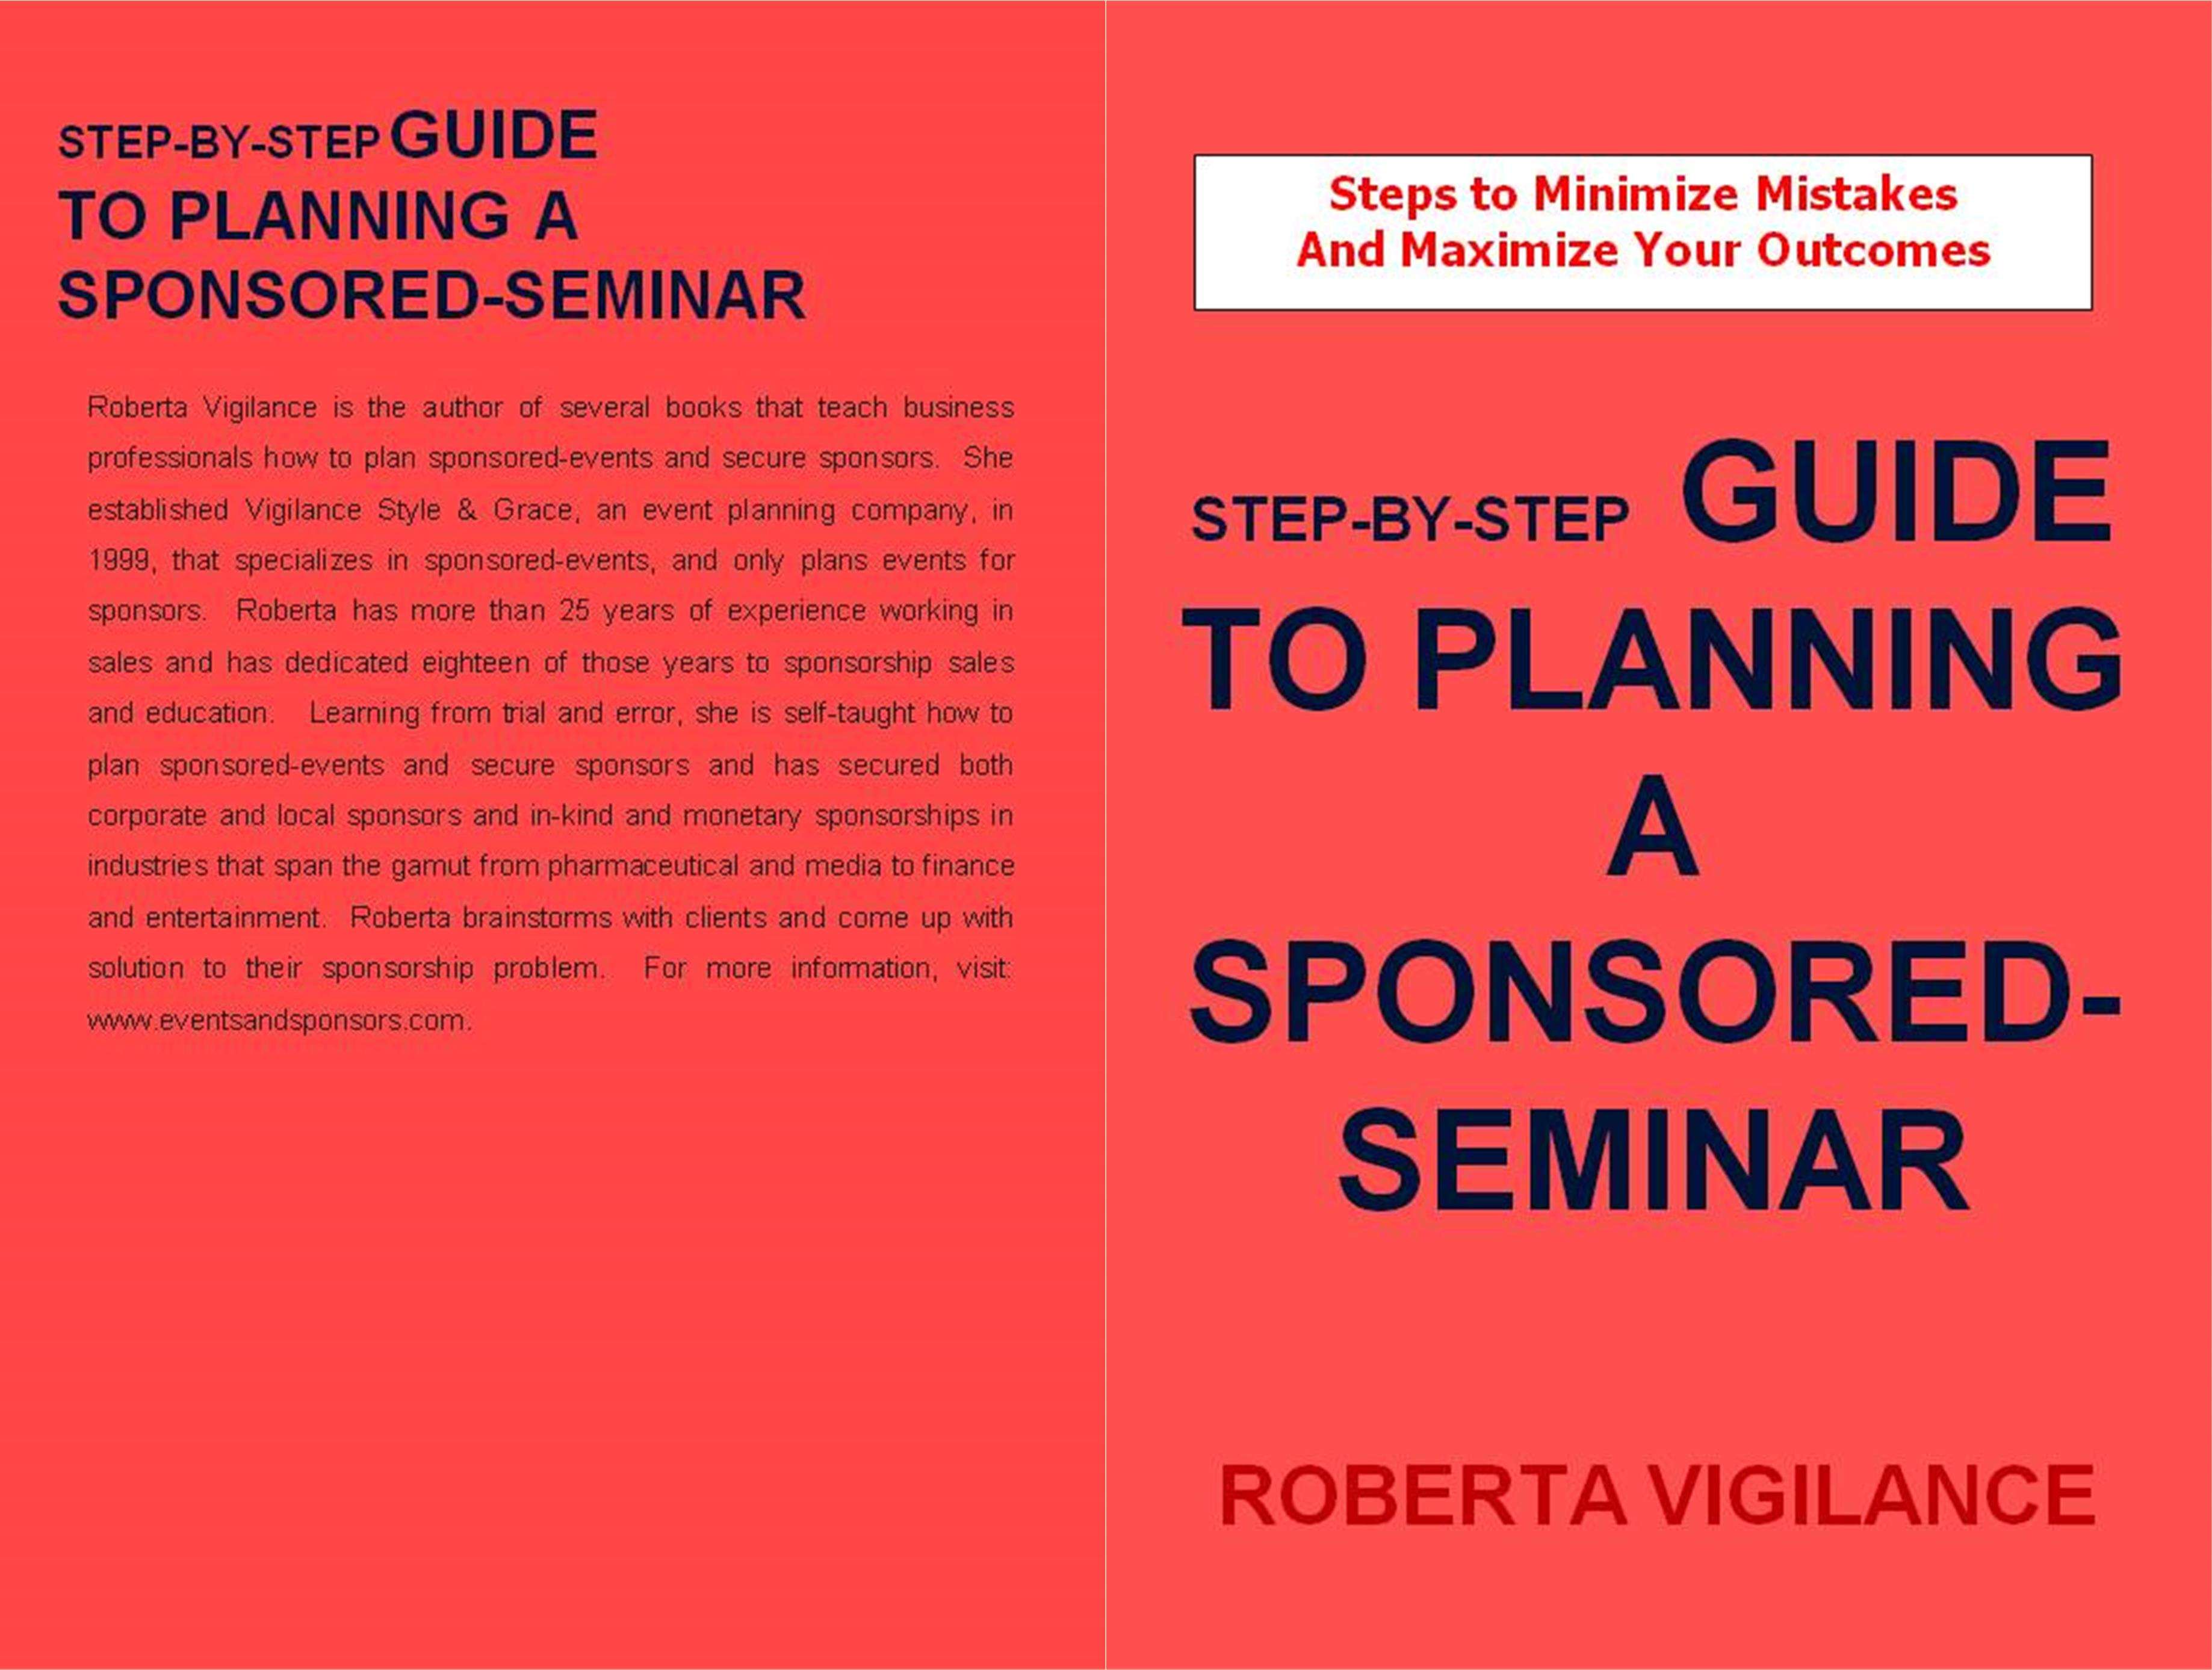 Step-By-Step Guide To Planning A Sponsored-Seminar cover image